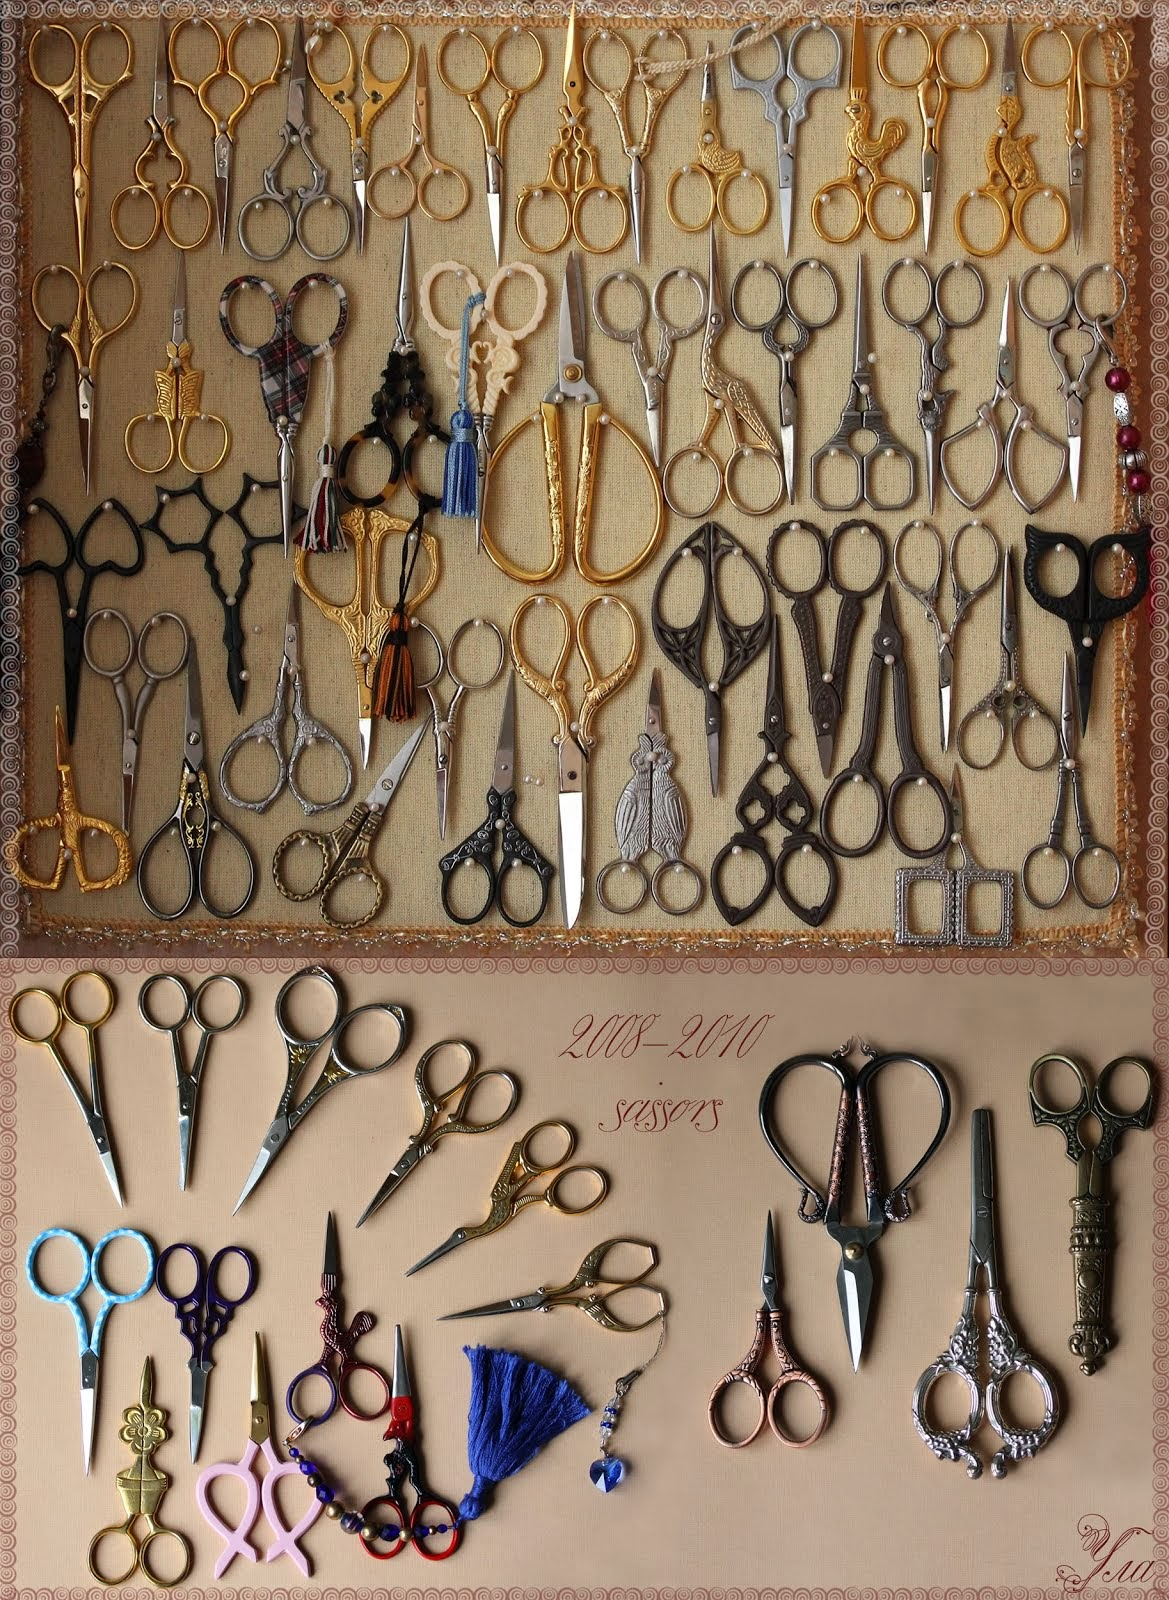 Коллекция ножниц (My collection of scissors)